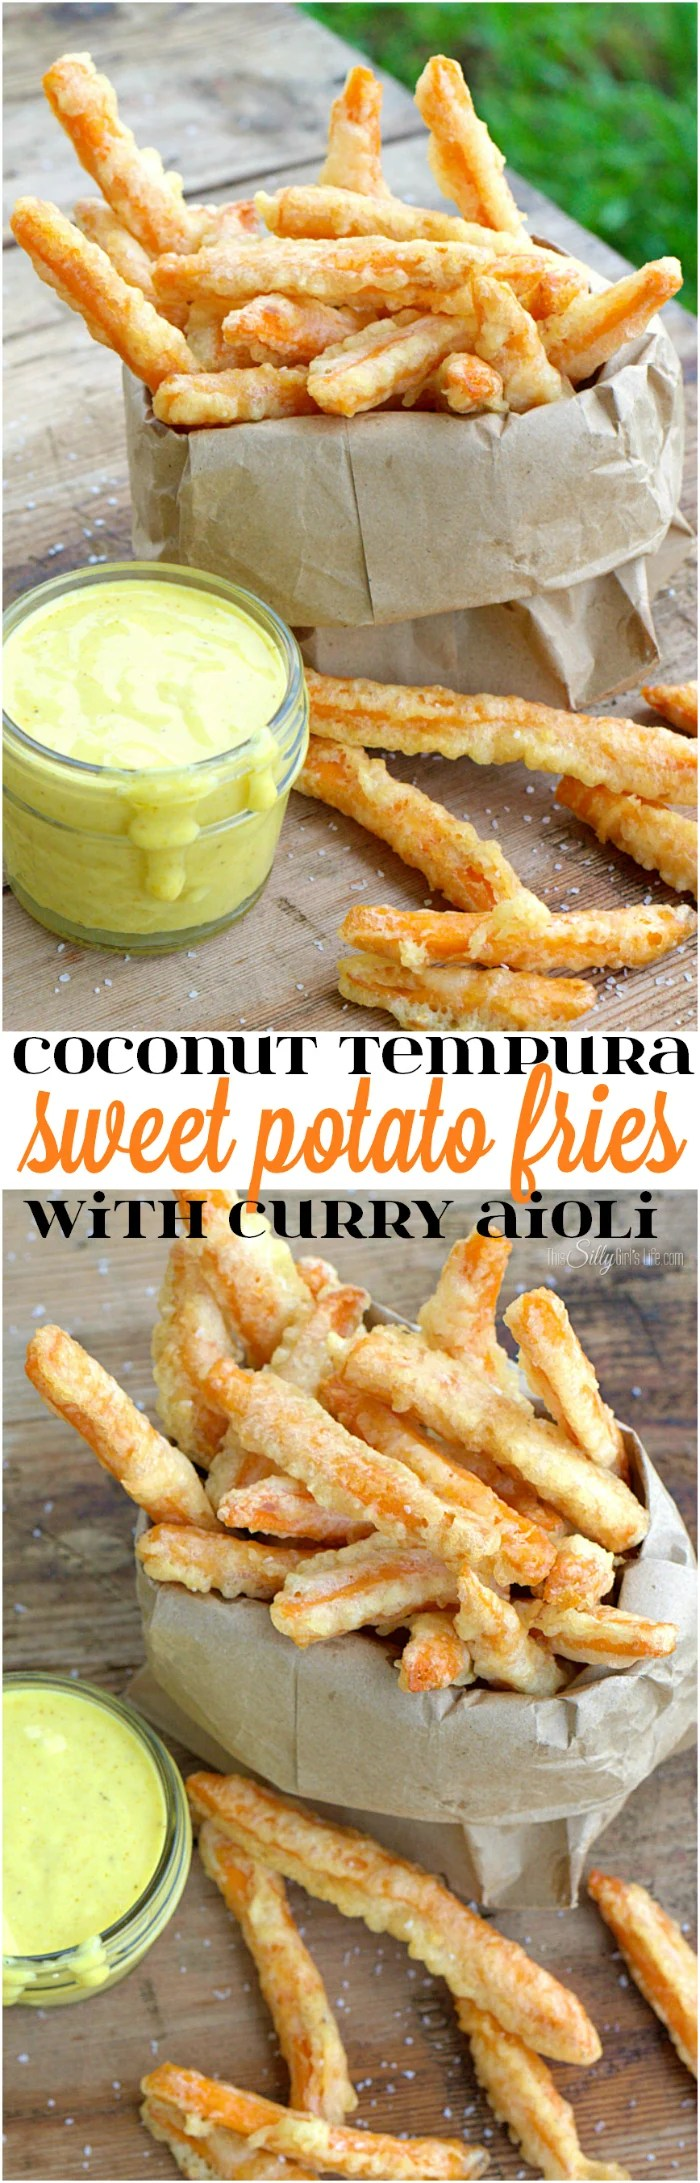 Coconut Tempura Sweet Potato Fries with Curry Aioli, frozen sweet potato fries, dipped in a light and crispy tempura batter and served with an amazing aioli sauce. #SpringIntoFlavor #ad - ThisSillyGirlsLife.com